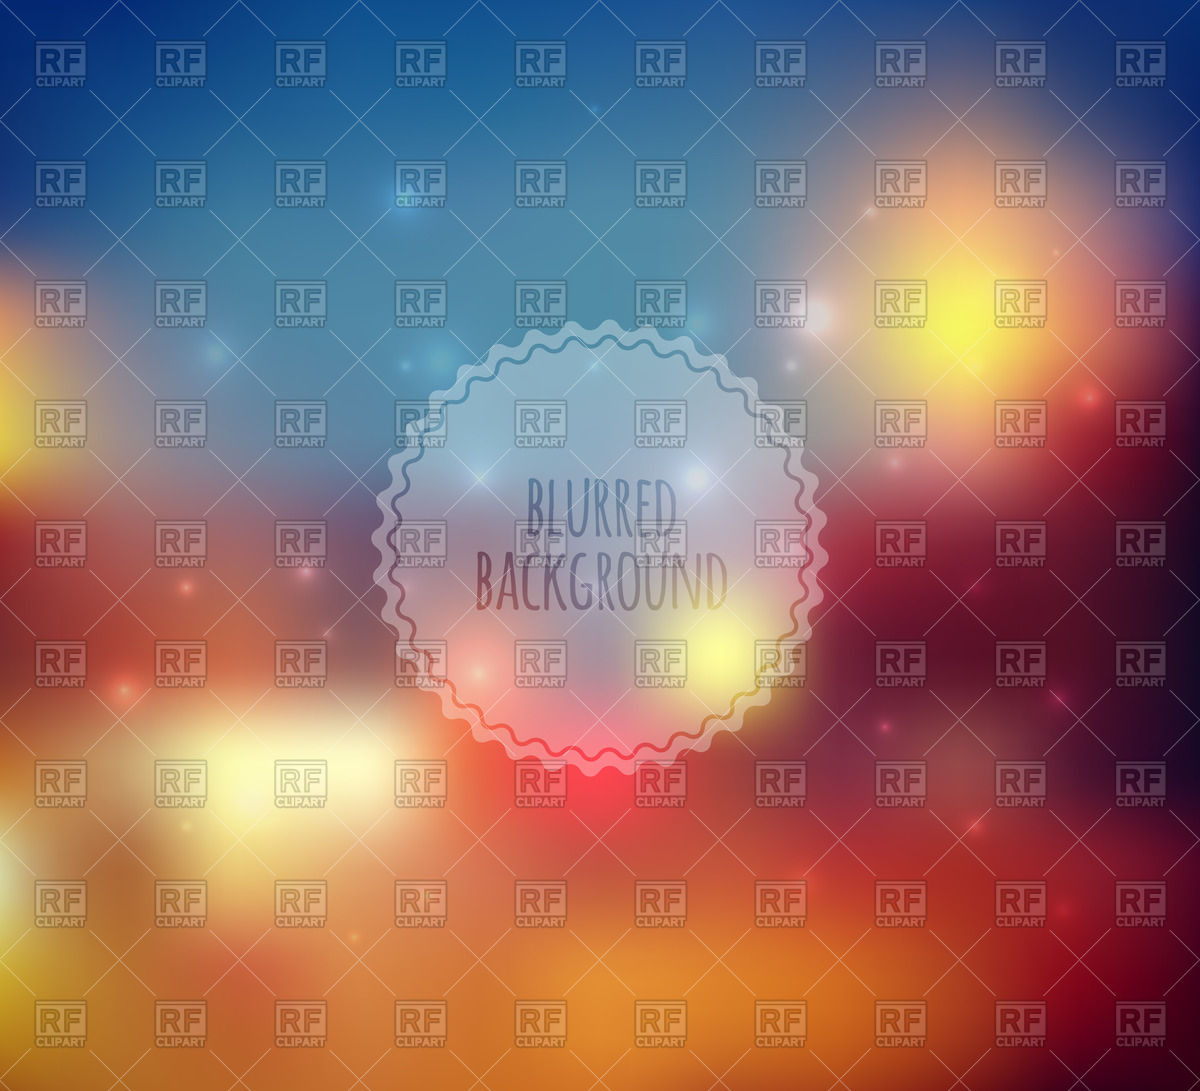 Blurred background or web design template Vector Image #60118.